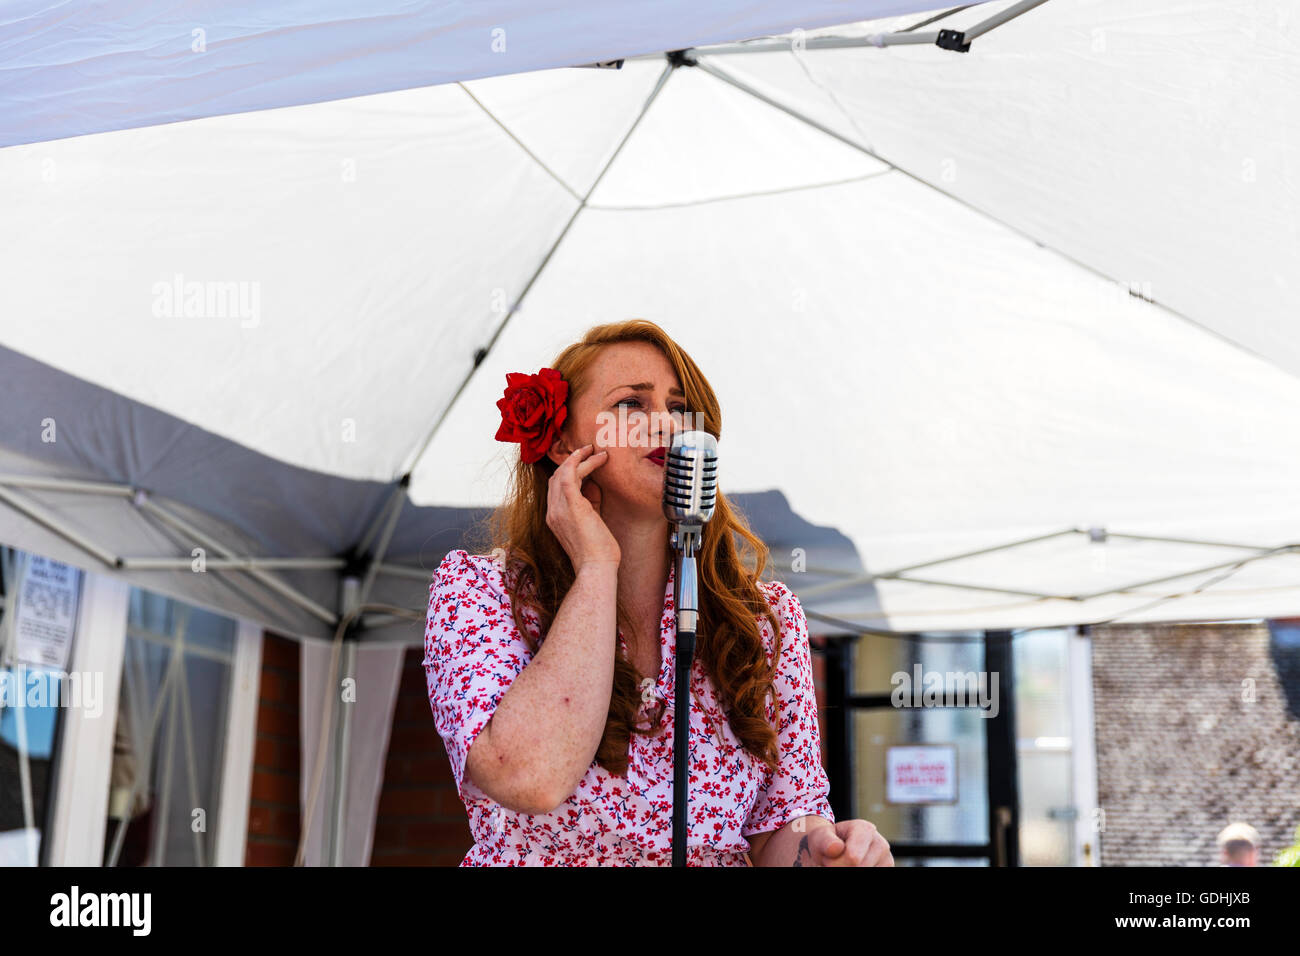 Woman singer singing into microphone 1940's style dress hair Woodhall Spa 1940's weekend people ww2 style - Stock Image